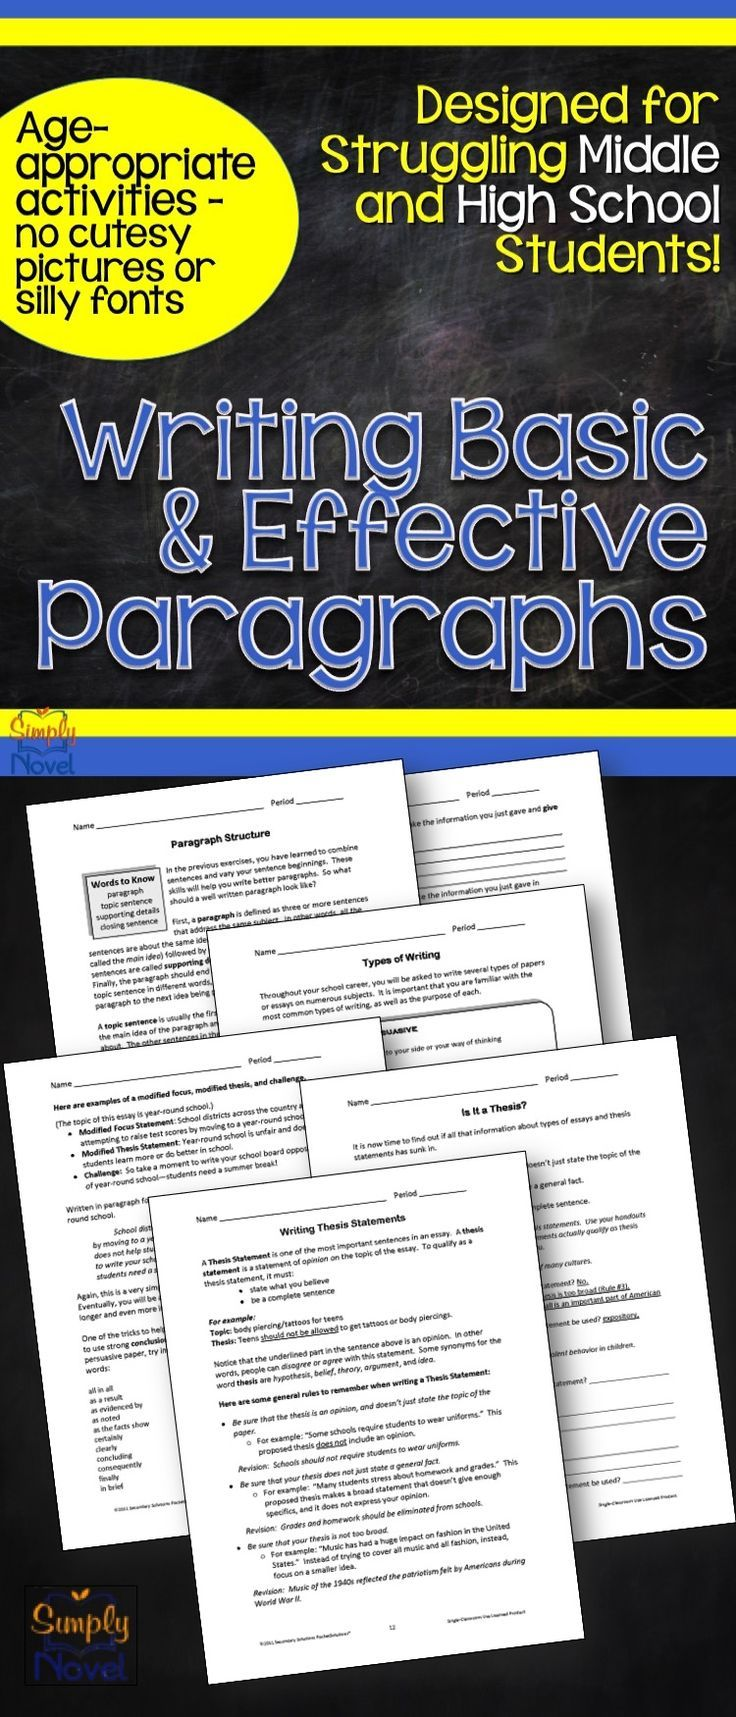 best ideas about paragraph structure paragraph paragraph structure writing practice for middle and high school students engaging materials for struggling students